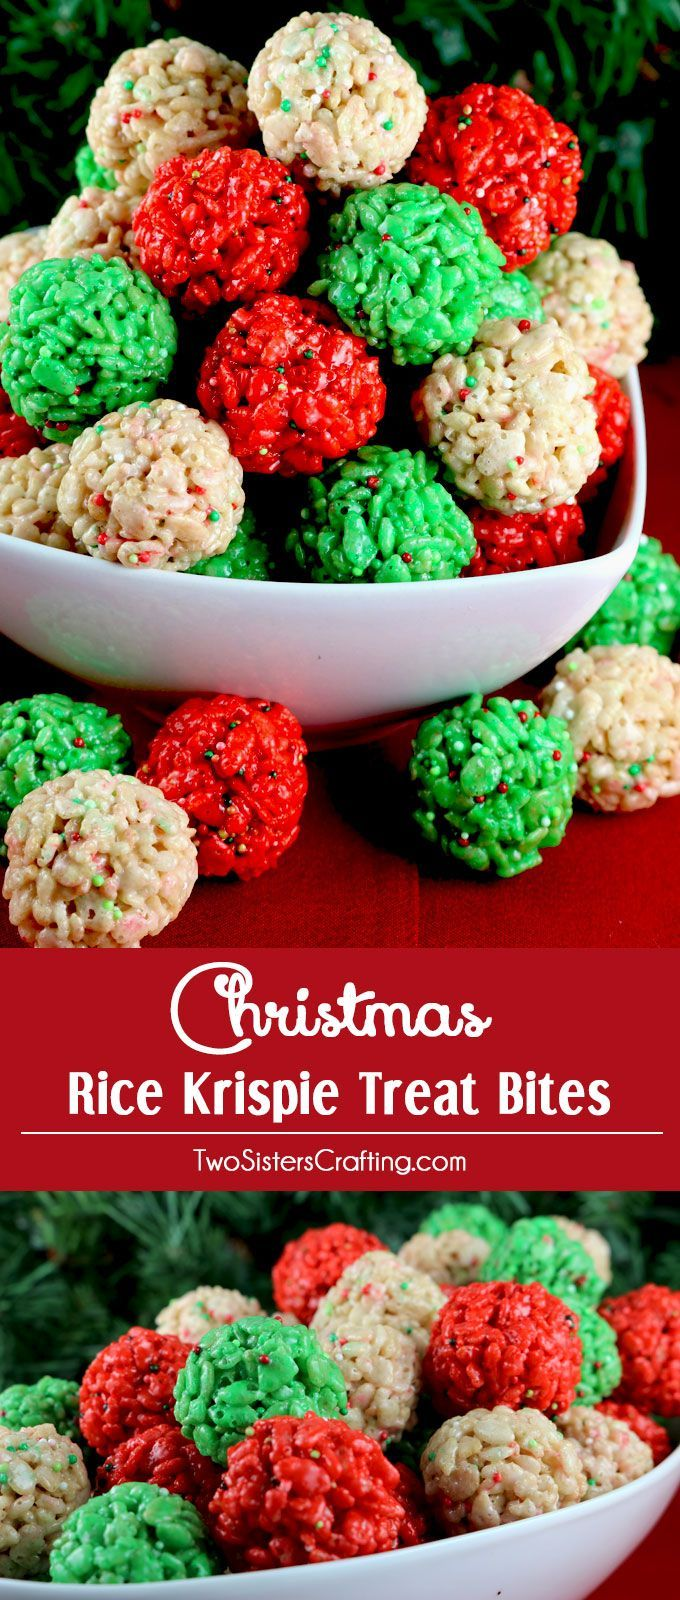 christmas rice krispie treat bites yummy bite sized balls of crunchy marshmallow y delight this is a christmas dessert that is easy to make and even